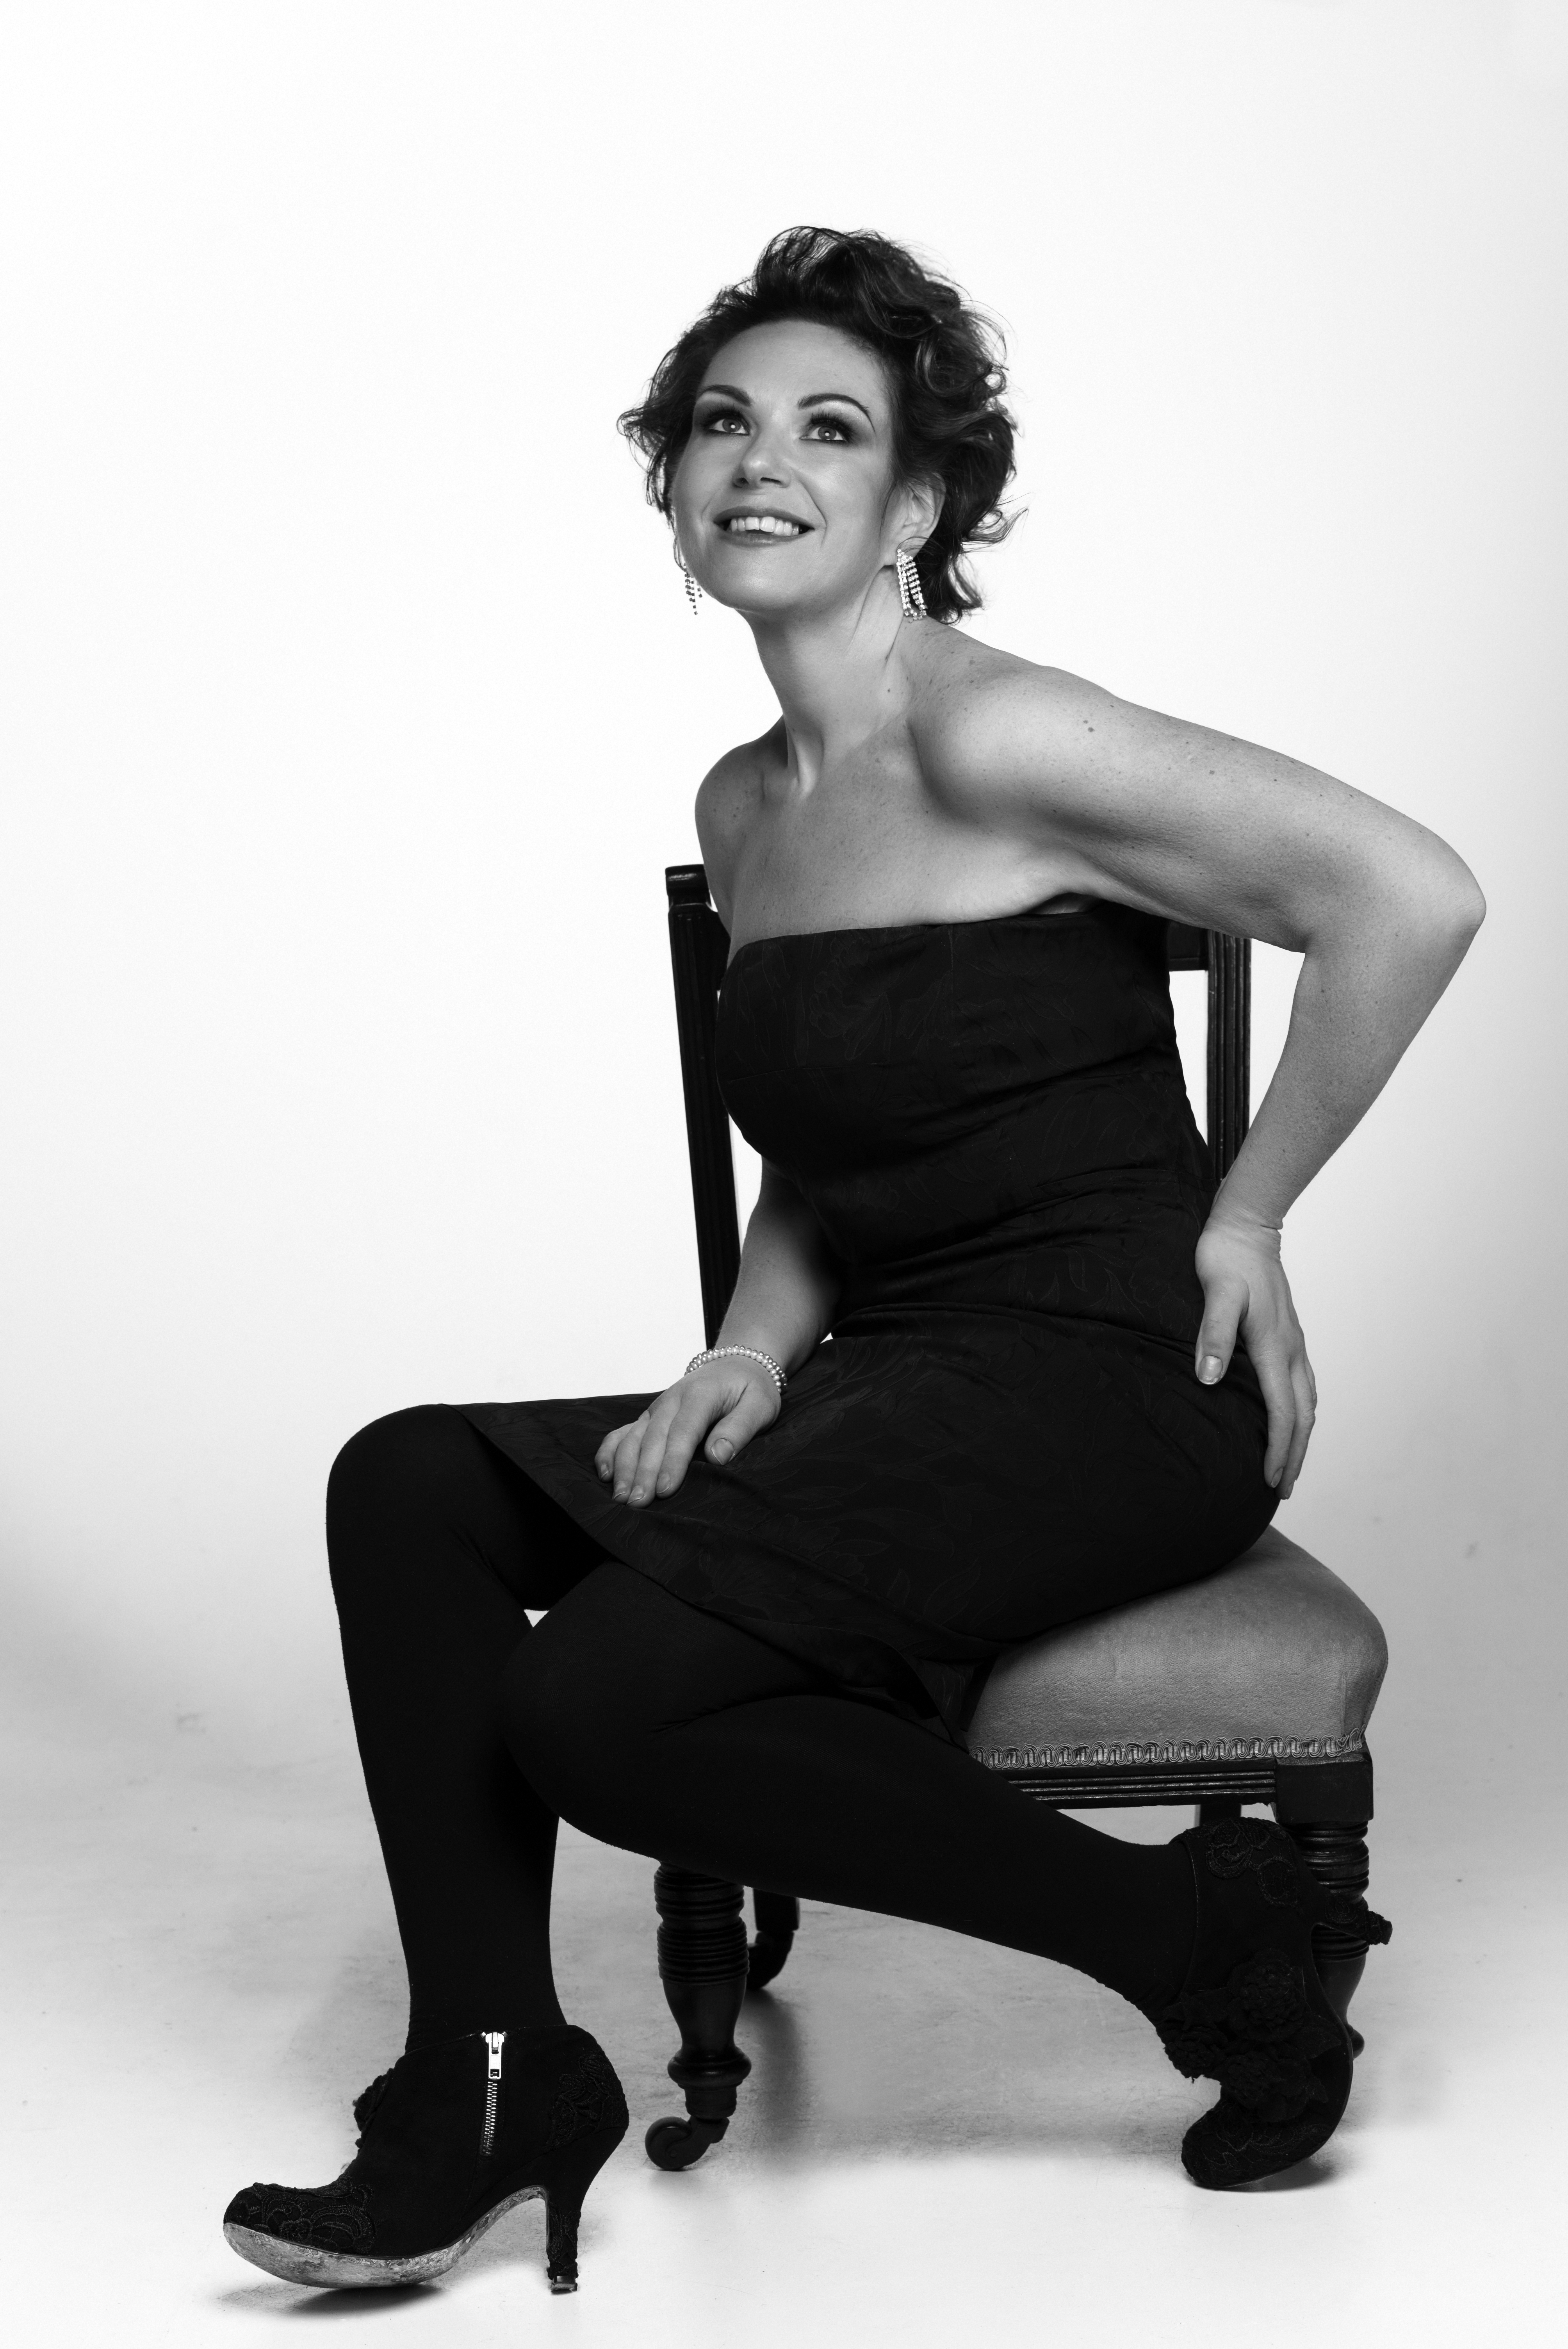 glamorous woman sitting on a chair